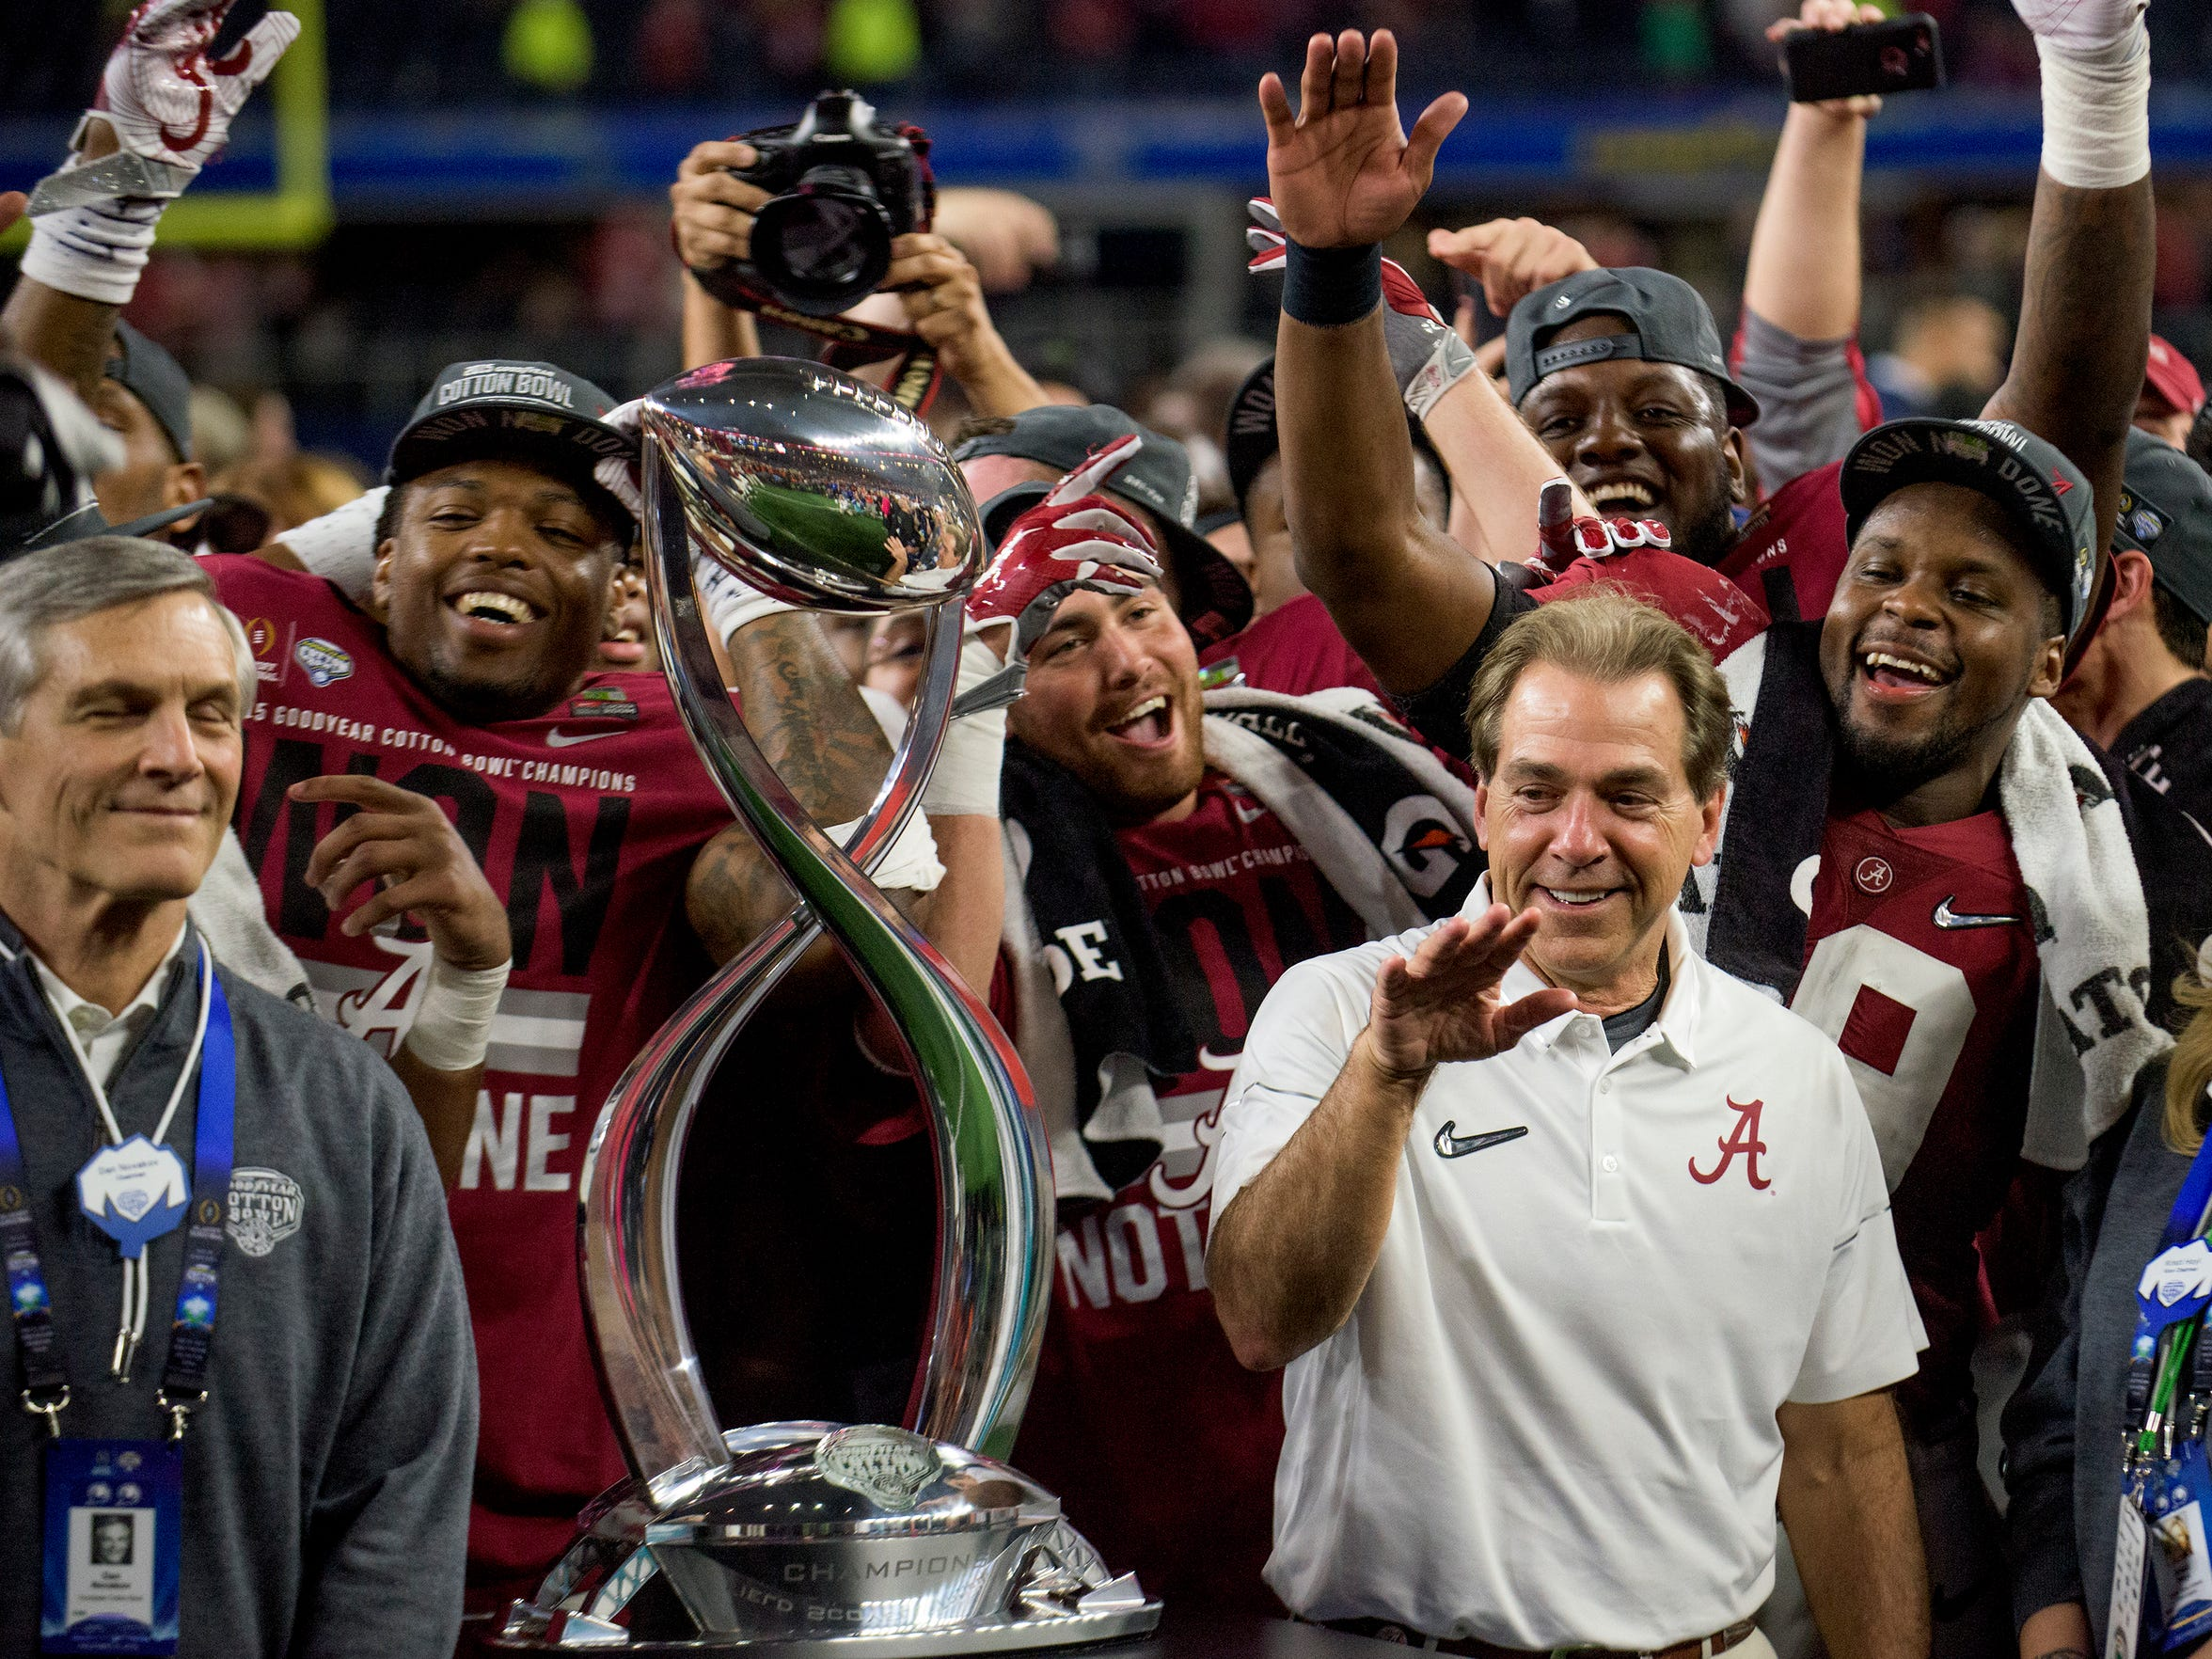 Alabama head coach Nick Saban celebrates with his team after defeating Michigan State in the Cotton Bowl on Thursday December 31, 2015 at AT&T Stadium in Arlington, Tx.